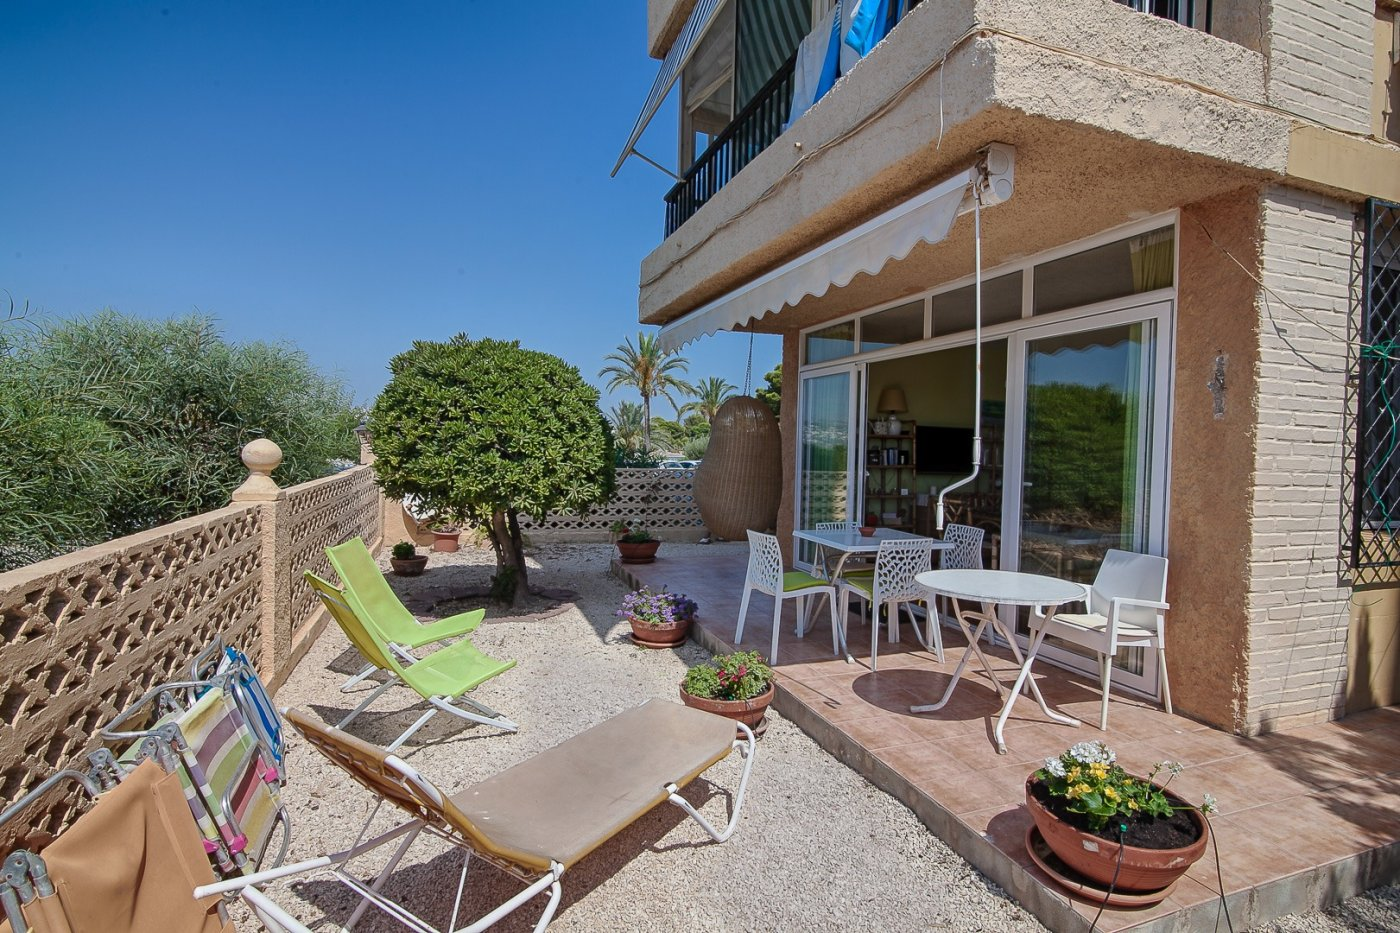 Apartment - Ready To Move And Live - Pla Del Mar - Moraira